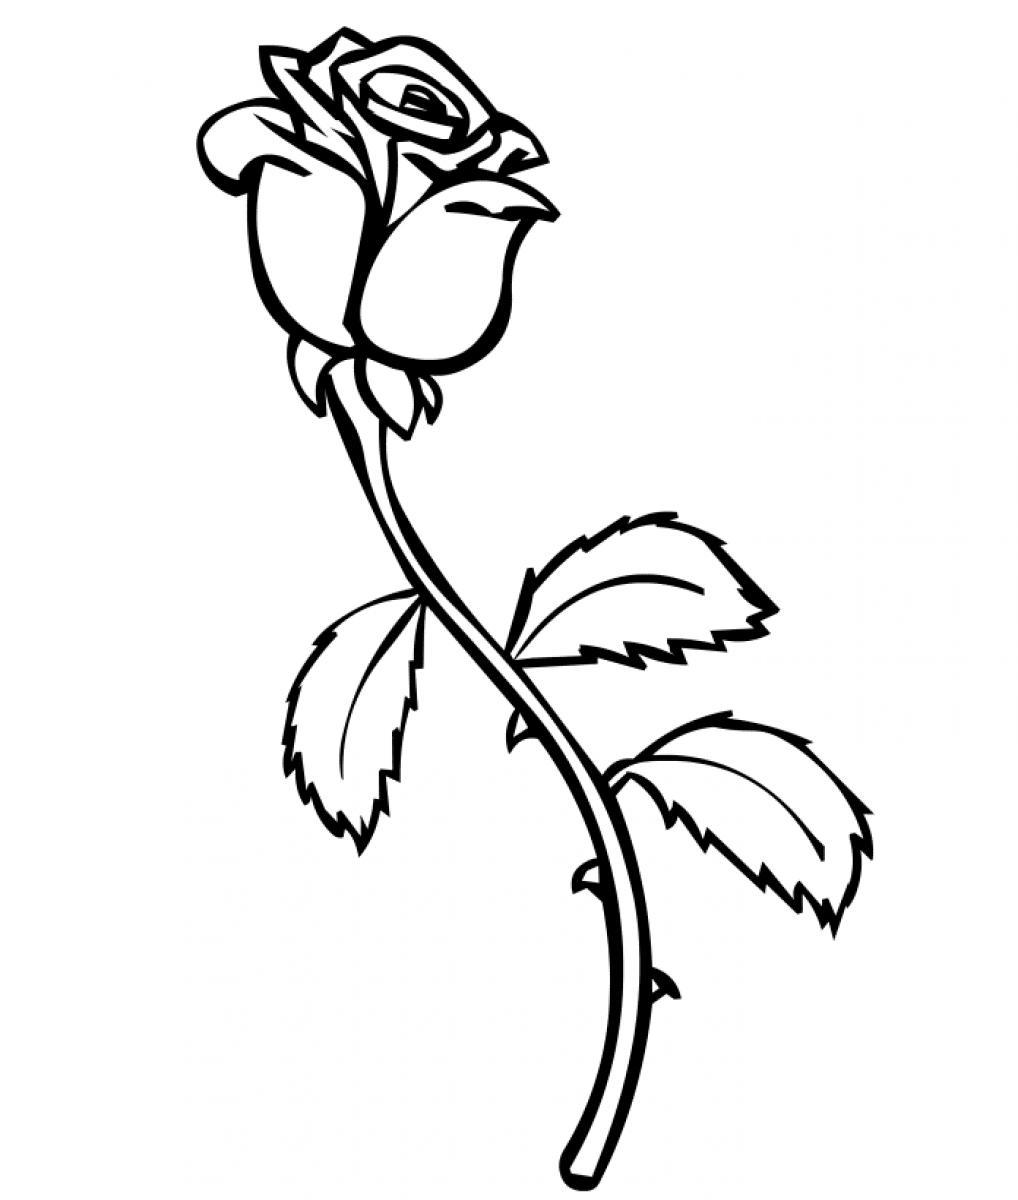 roses coloring pages printable pin by regina perry on sketches detailed coloring pages roses pages coloring printable